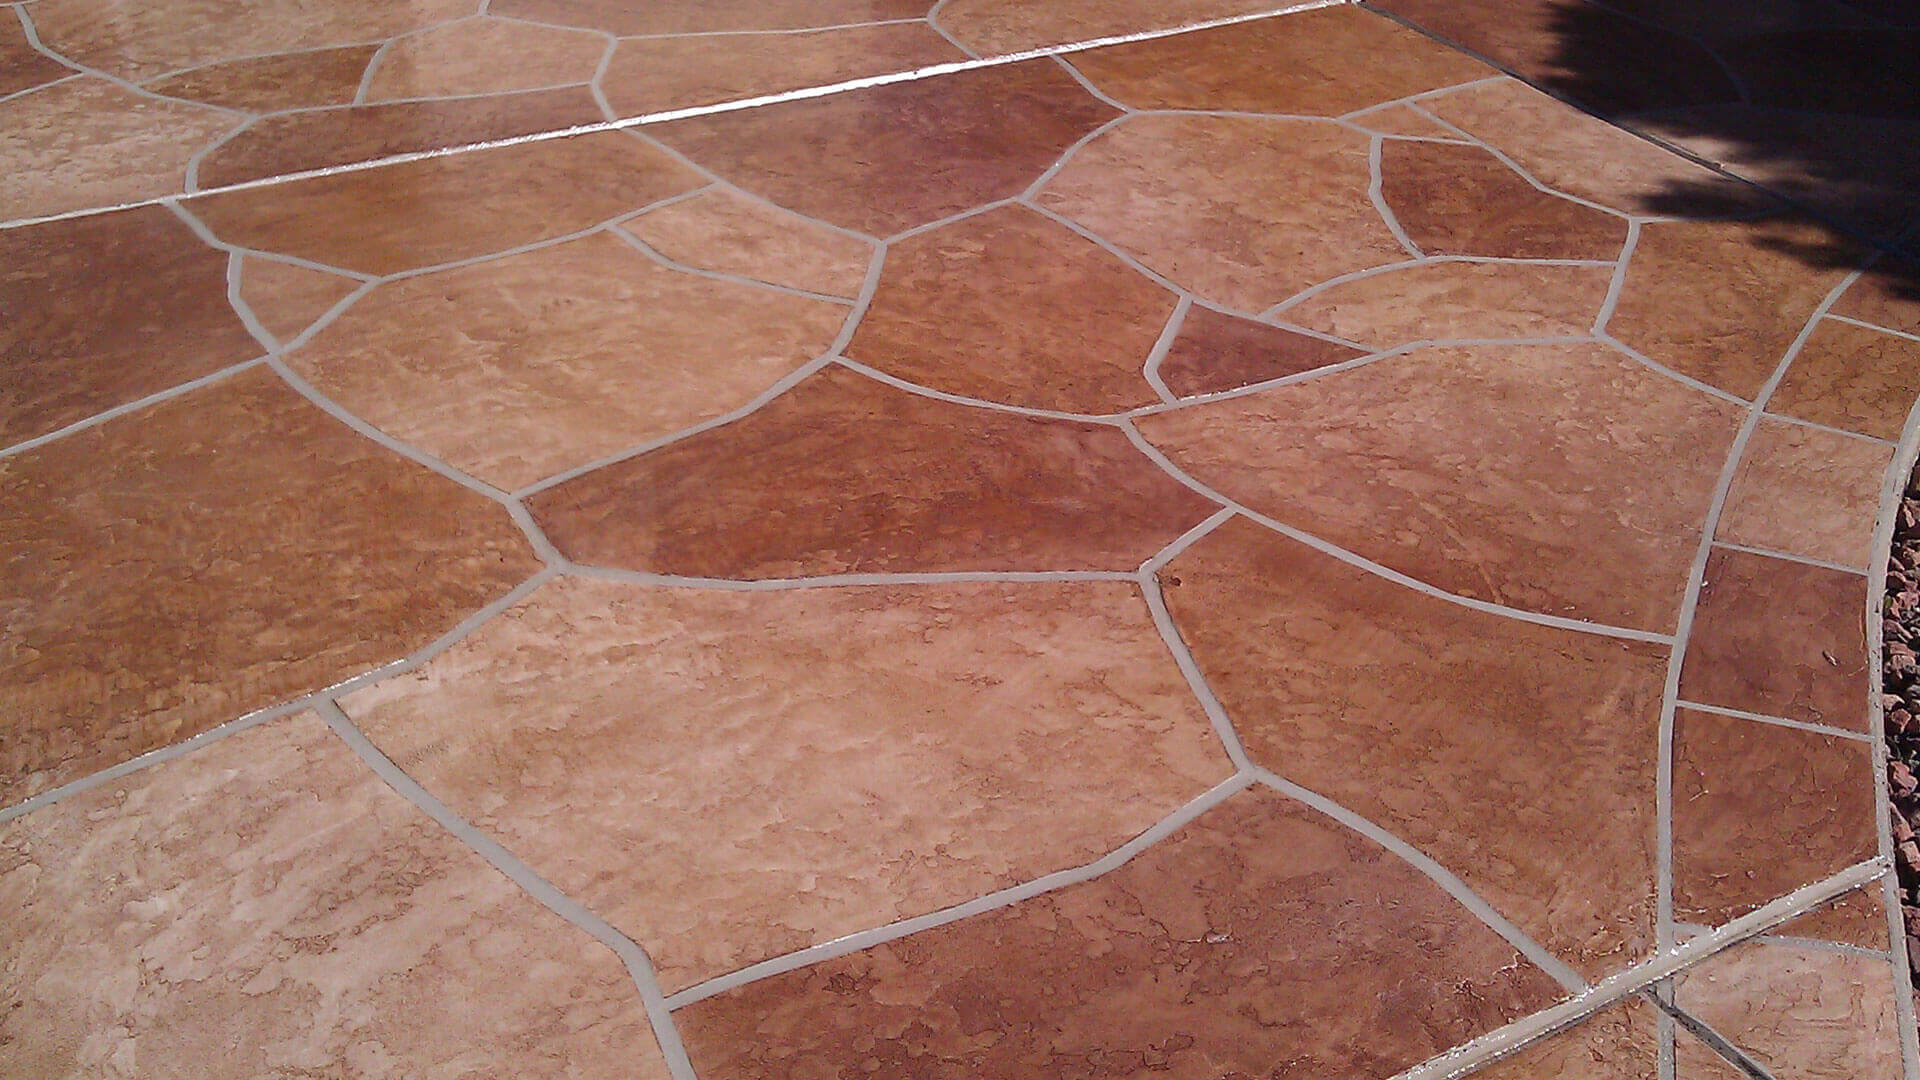 Gilroy Landscaping Company, Concrete Contractor and Landscaper